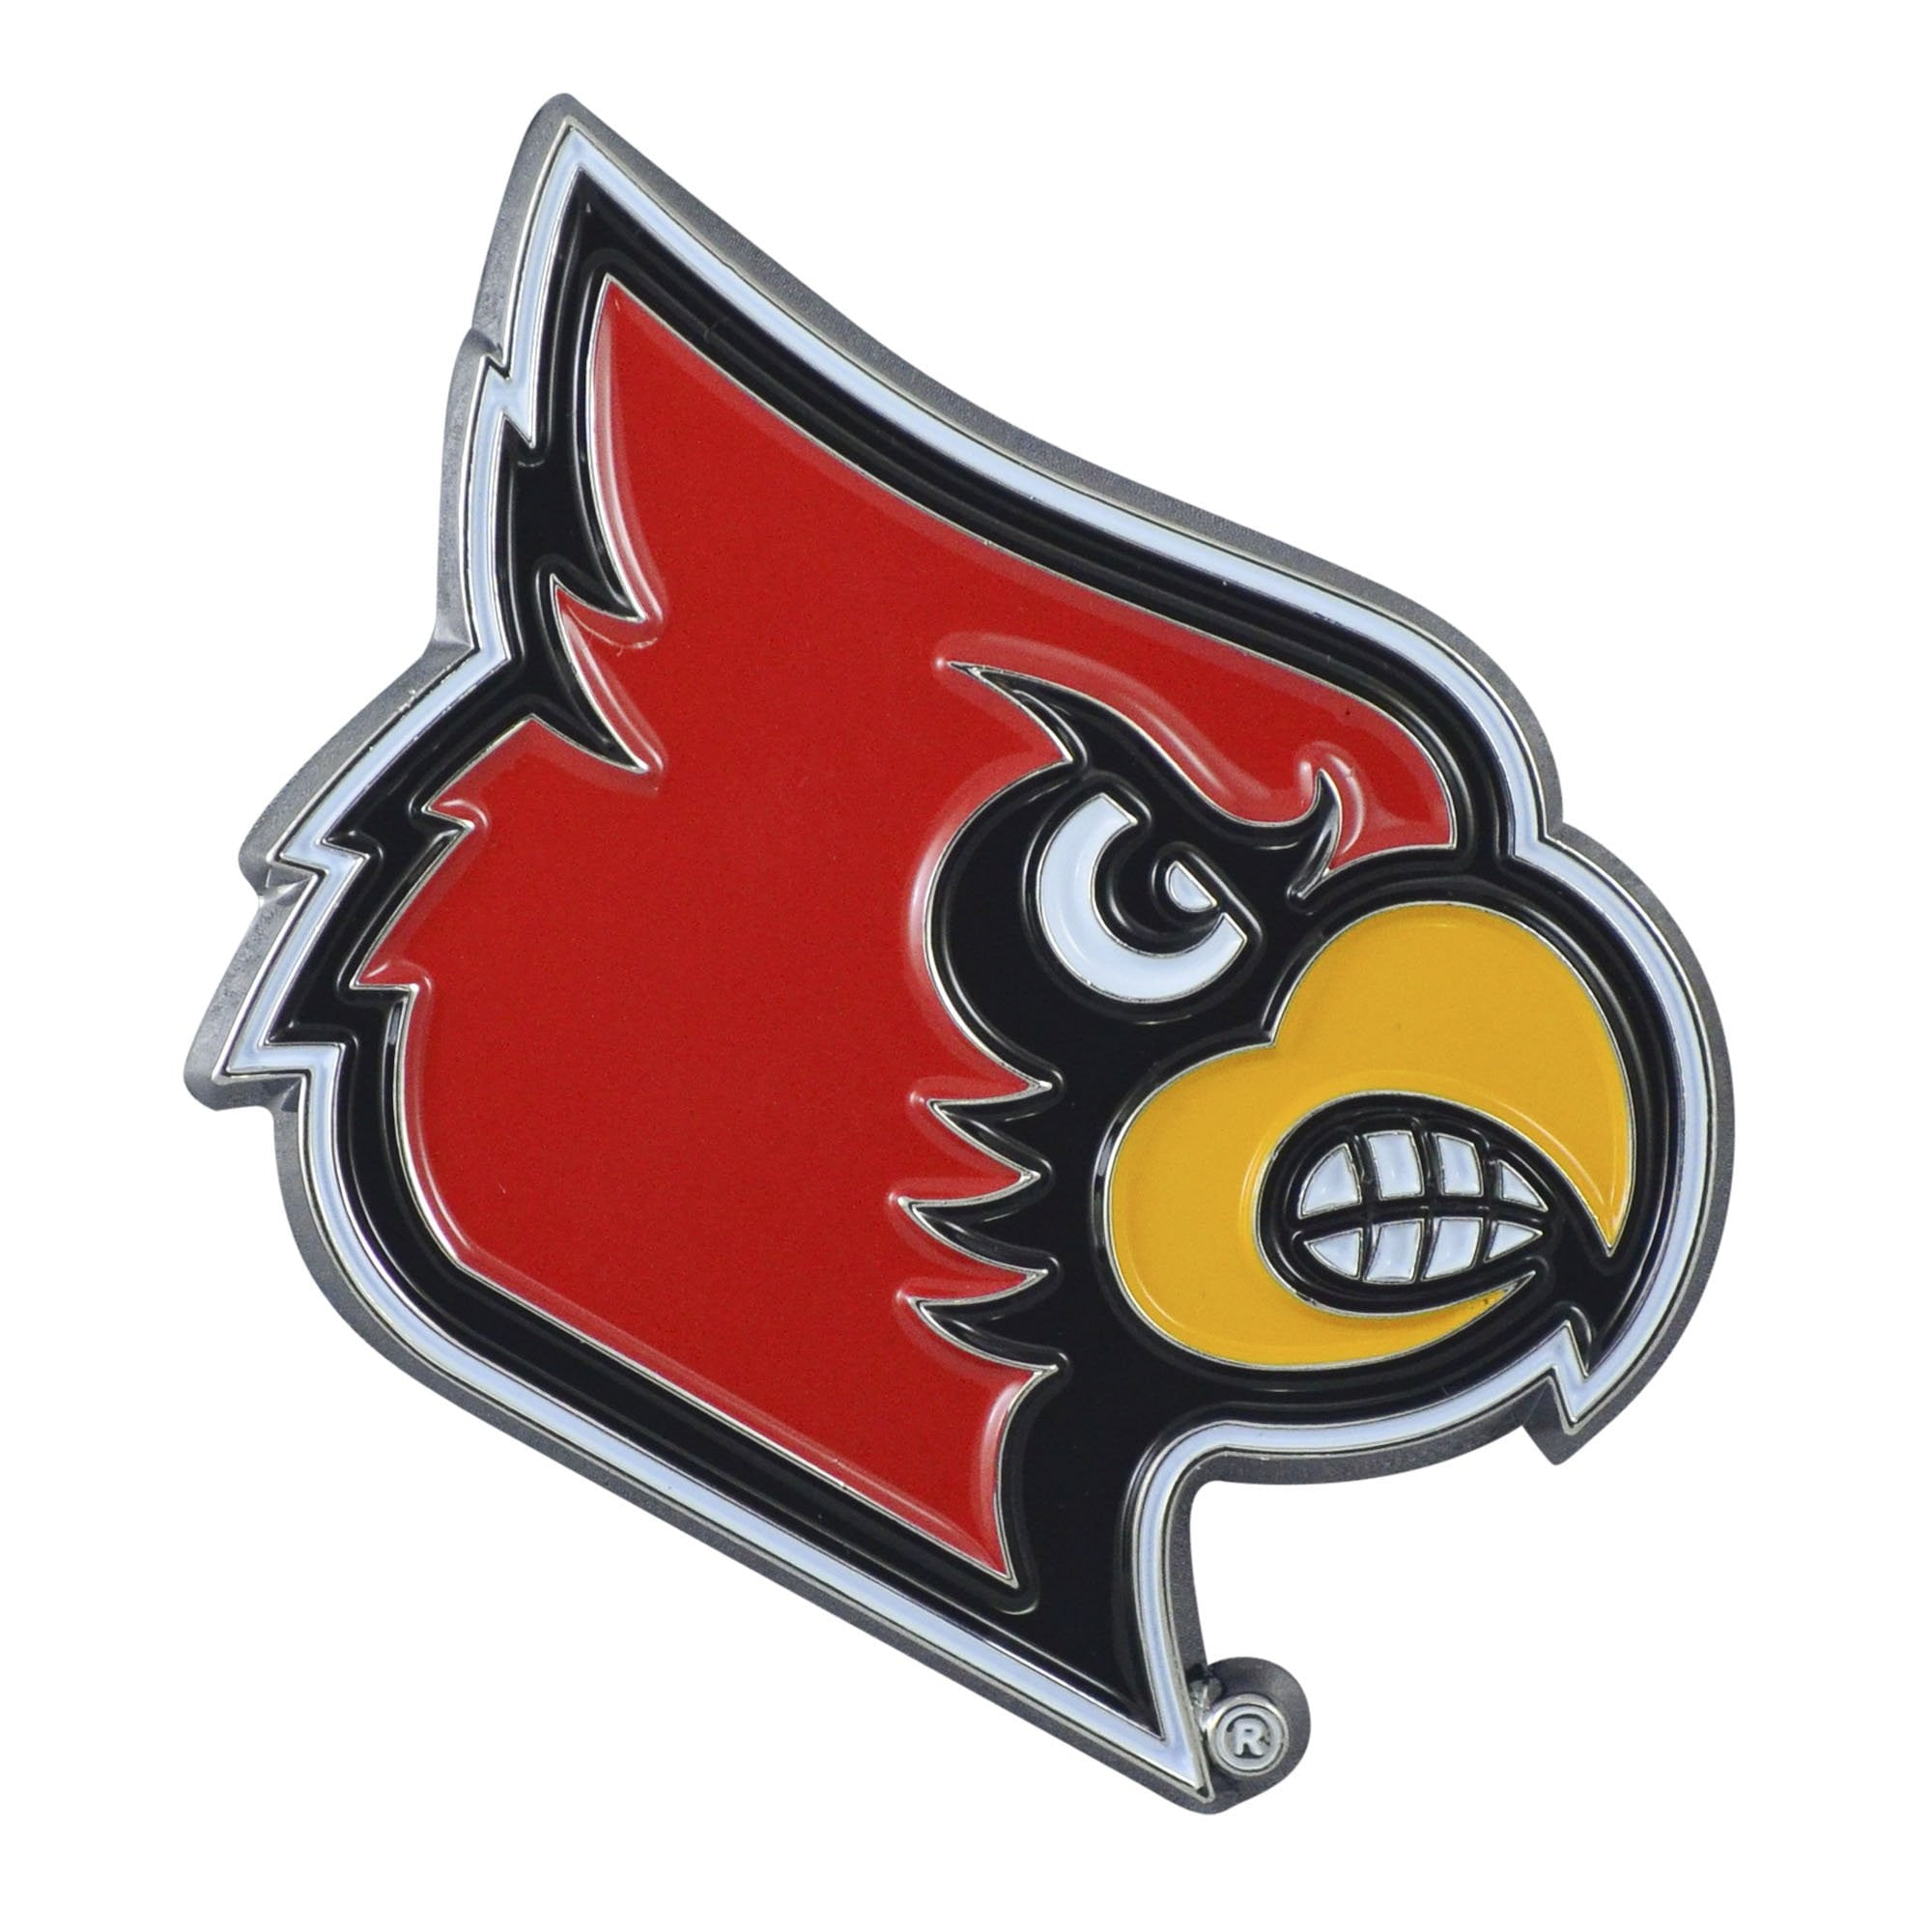 Louisville Cardinals 3D Color Emblem